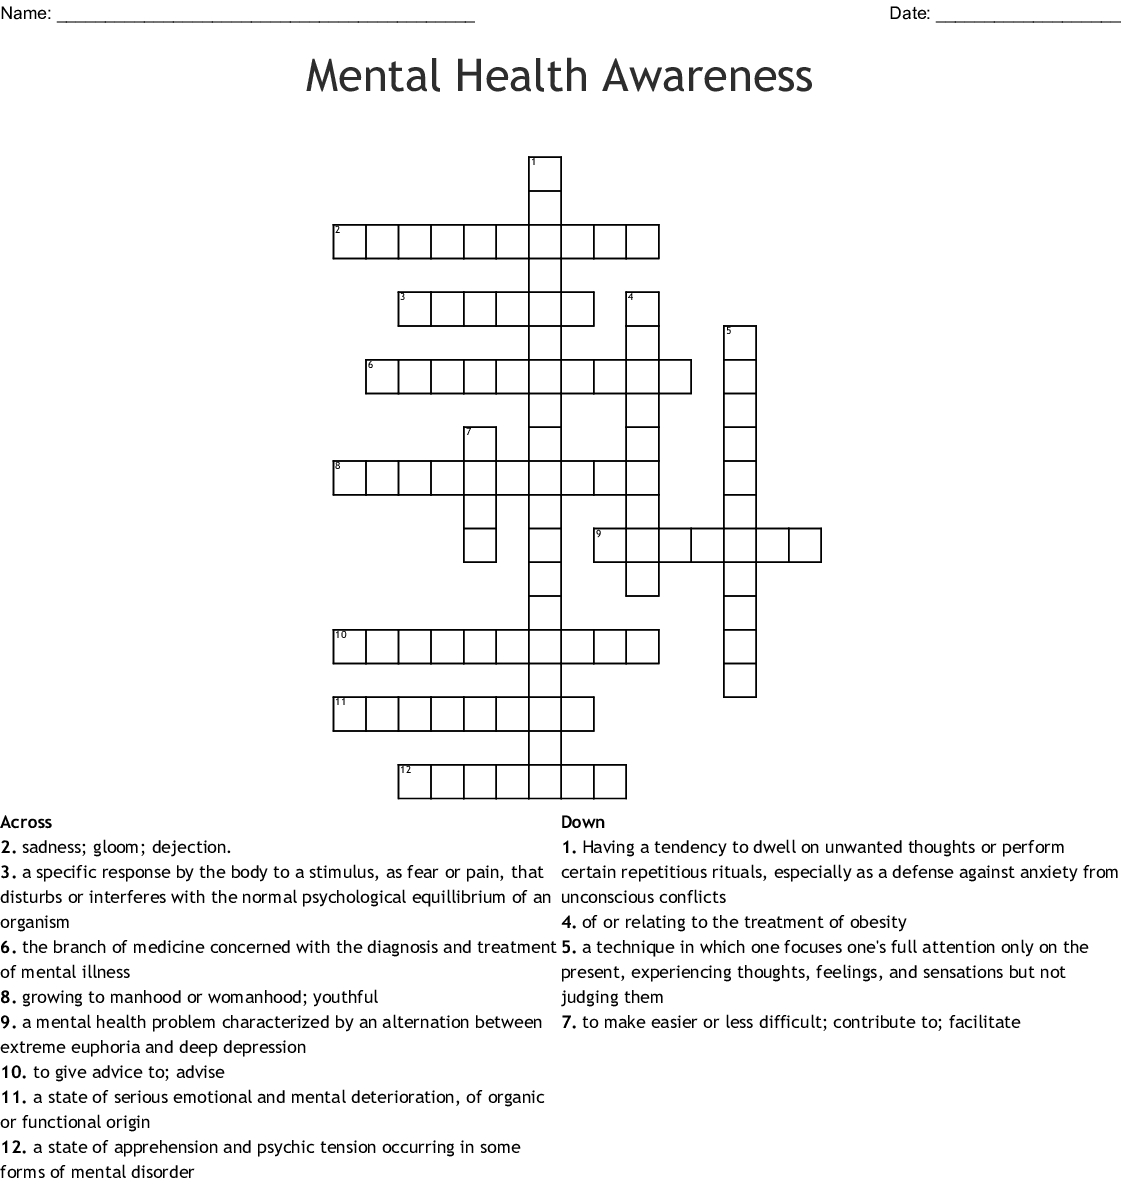 Mental Health Awareness Crossword - Wordmint - Printable Crossword Puzzles For Mental Health